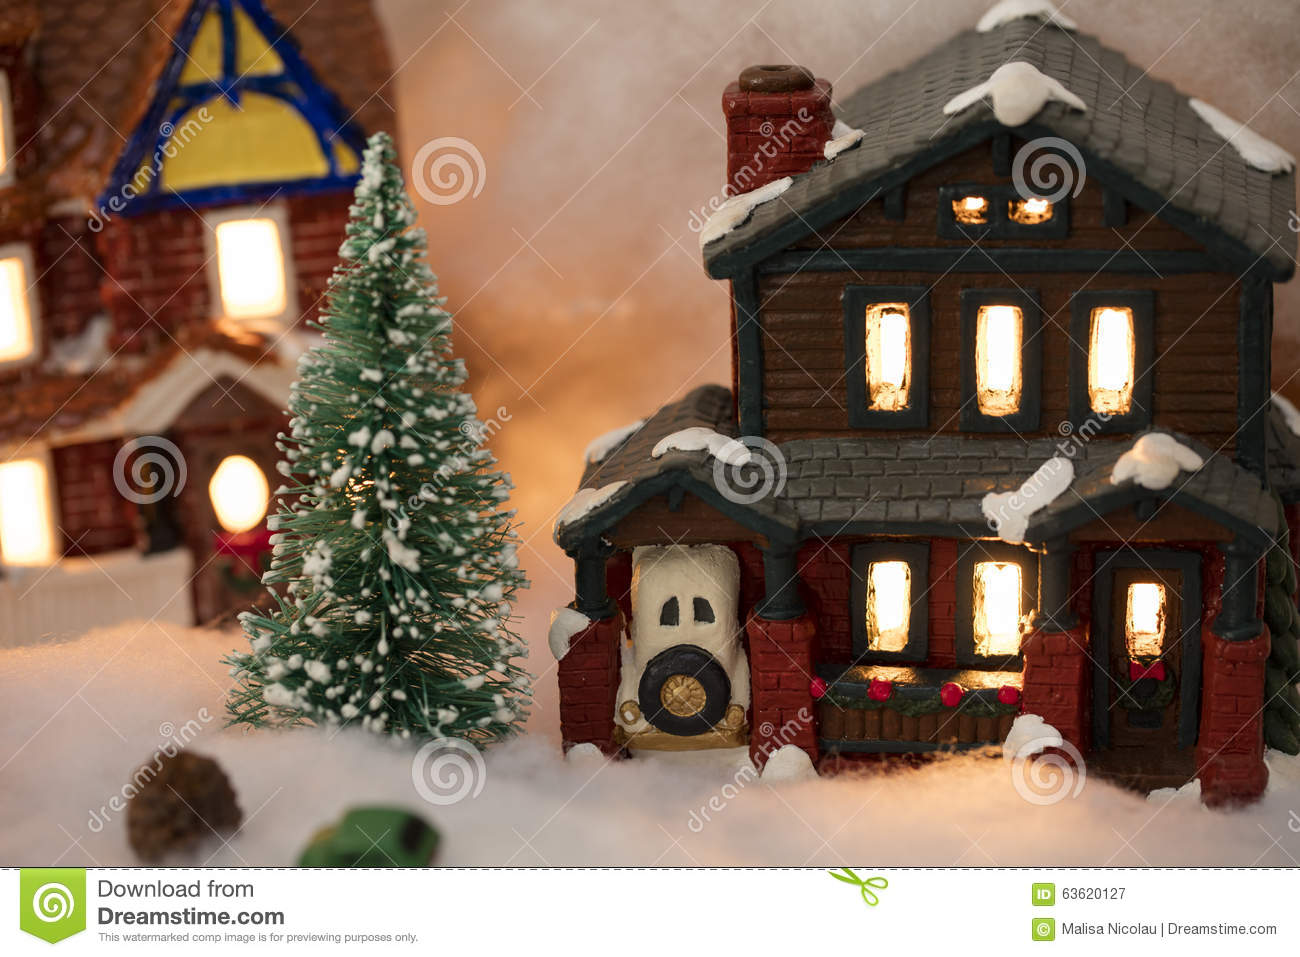 miniature christmas village scene - Miniature Christmas Town Decorations